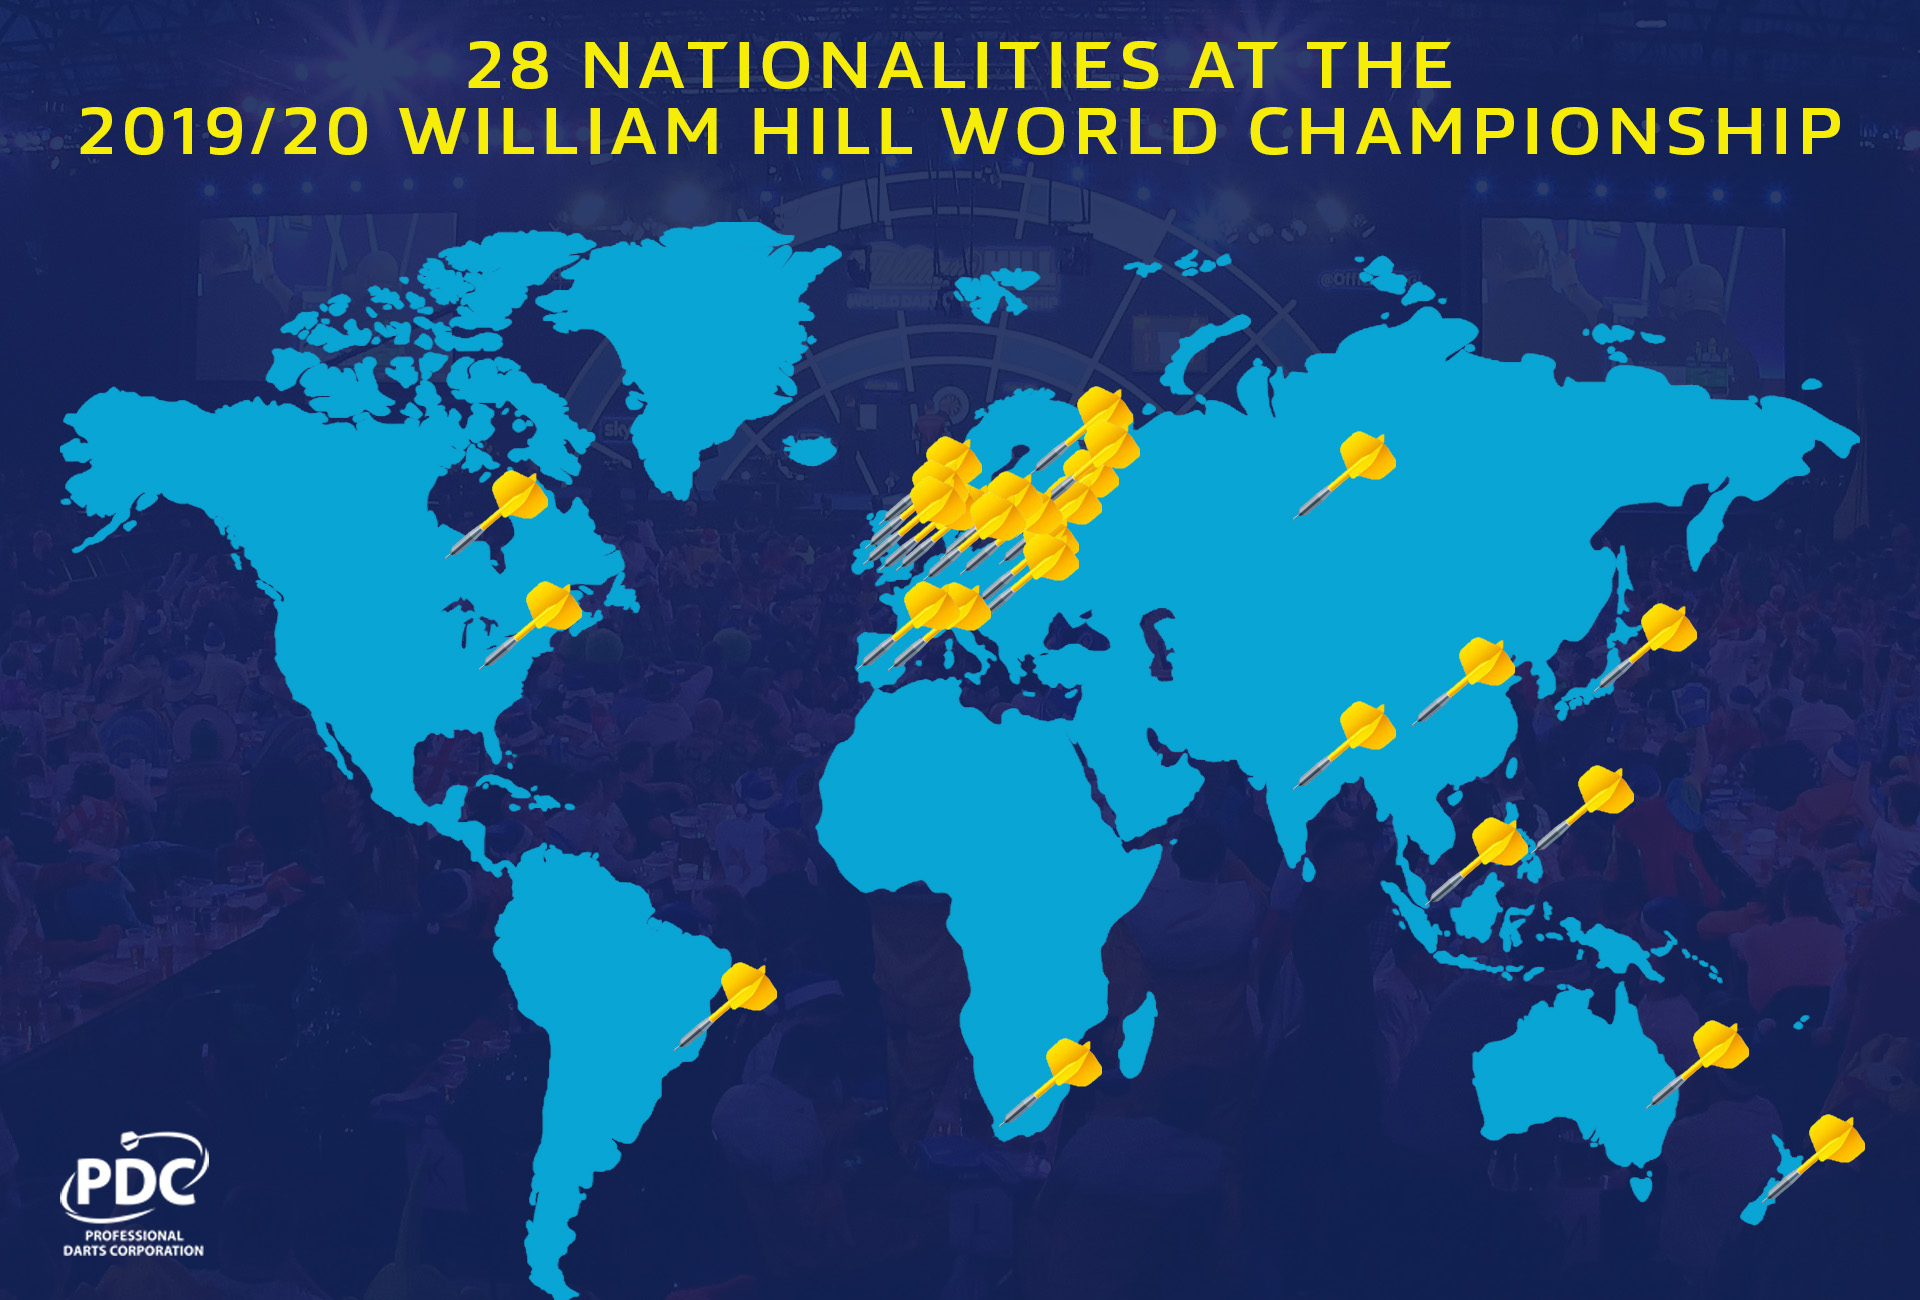 Nationalities on map at World Championship (PDC)